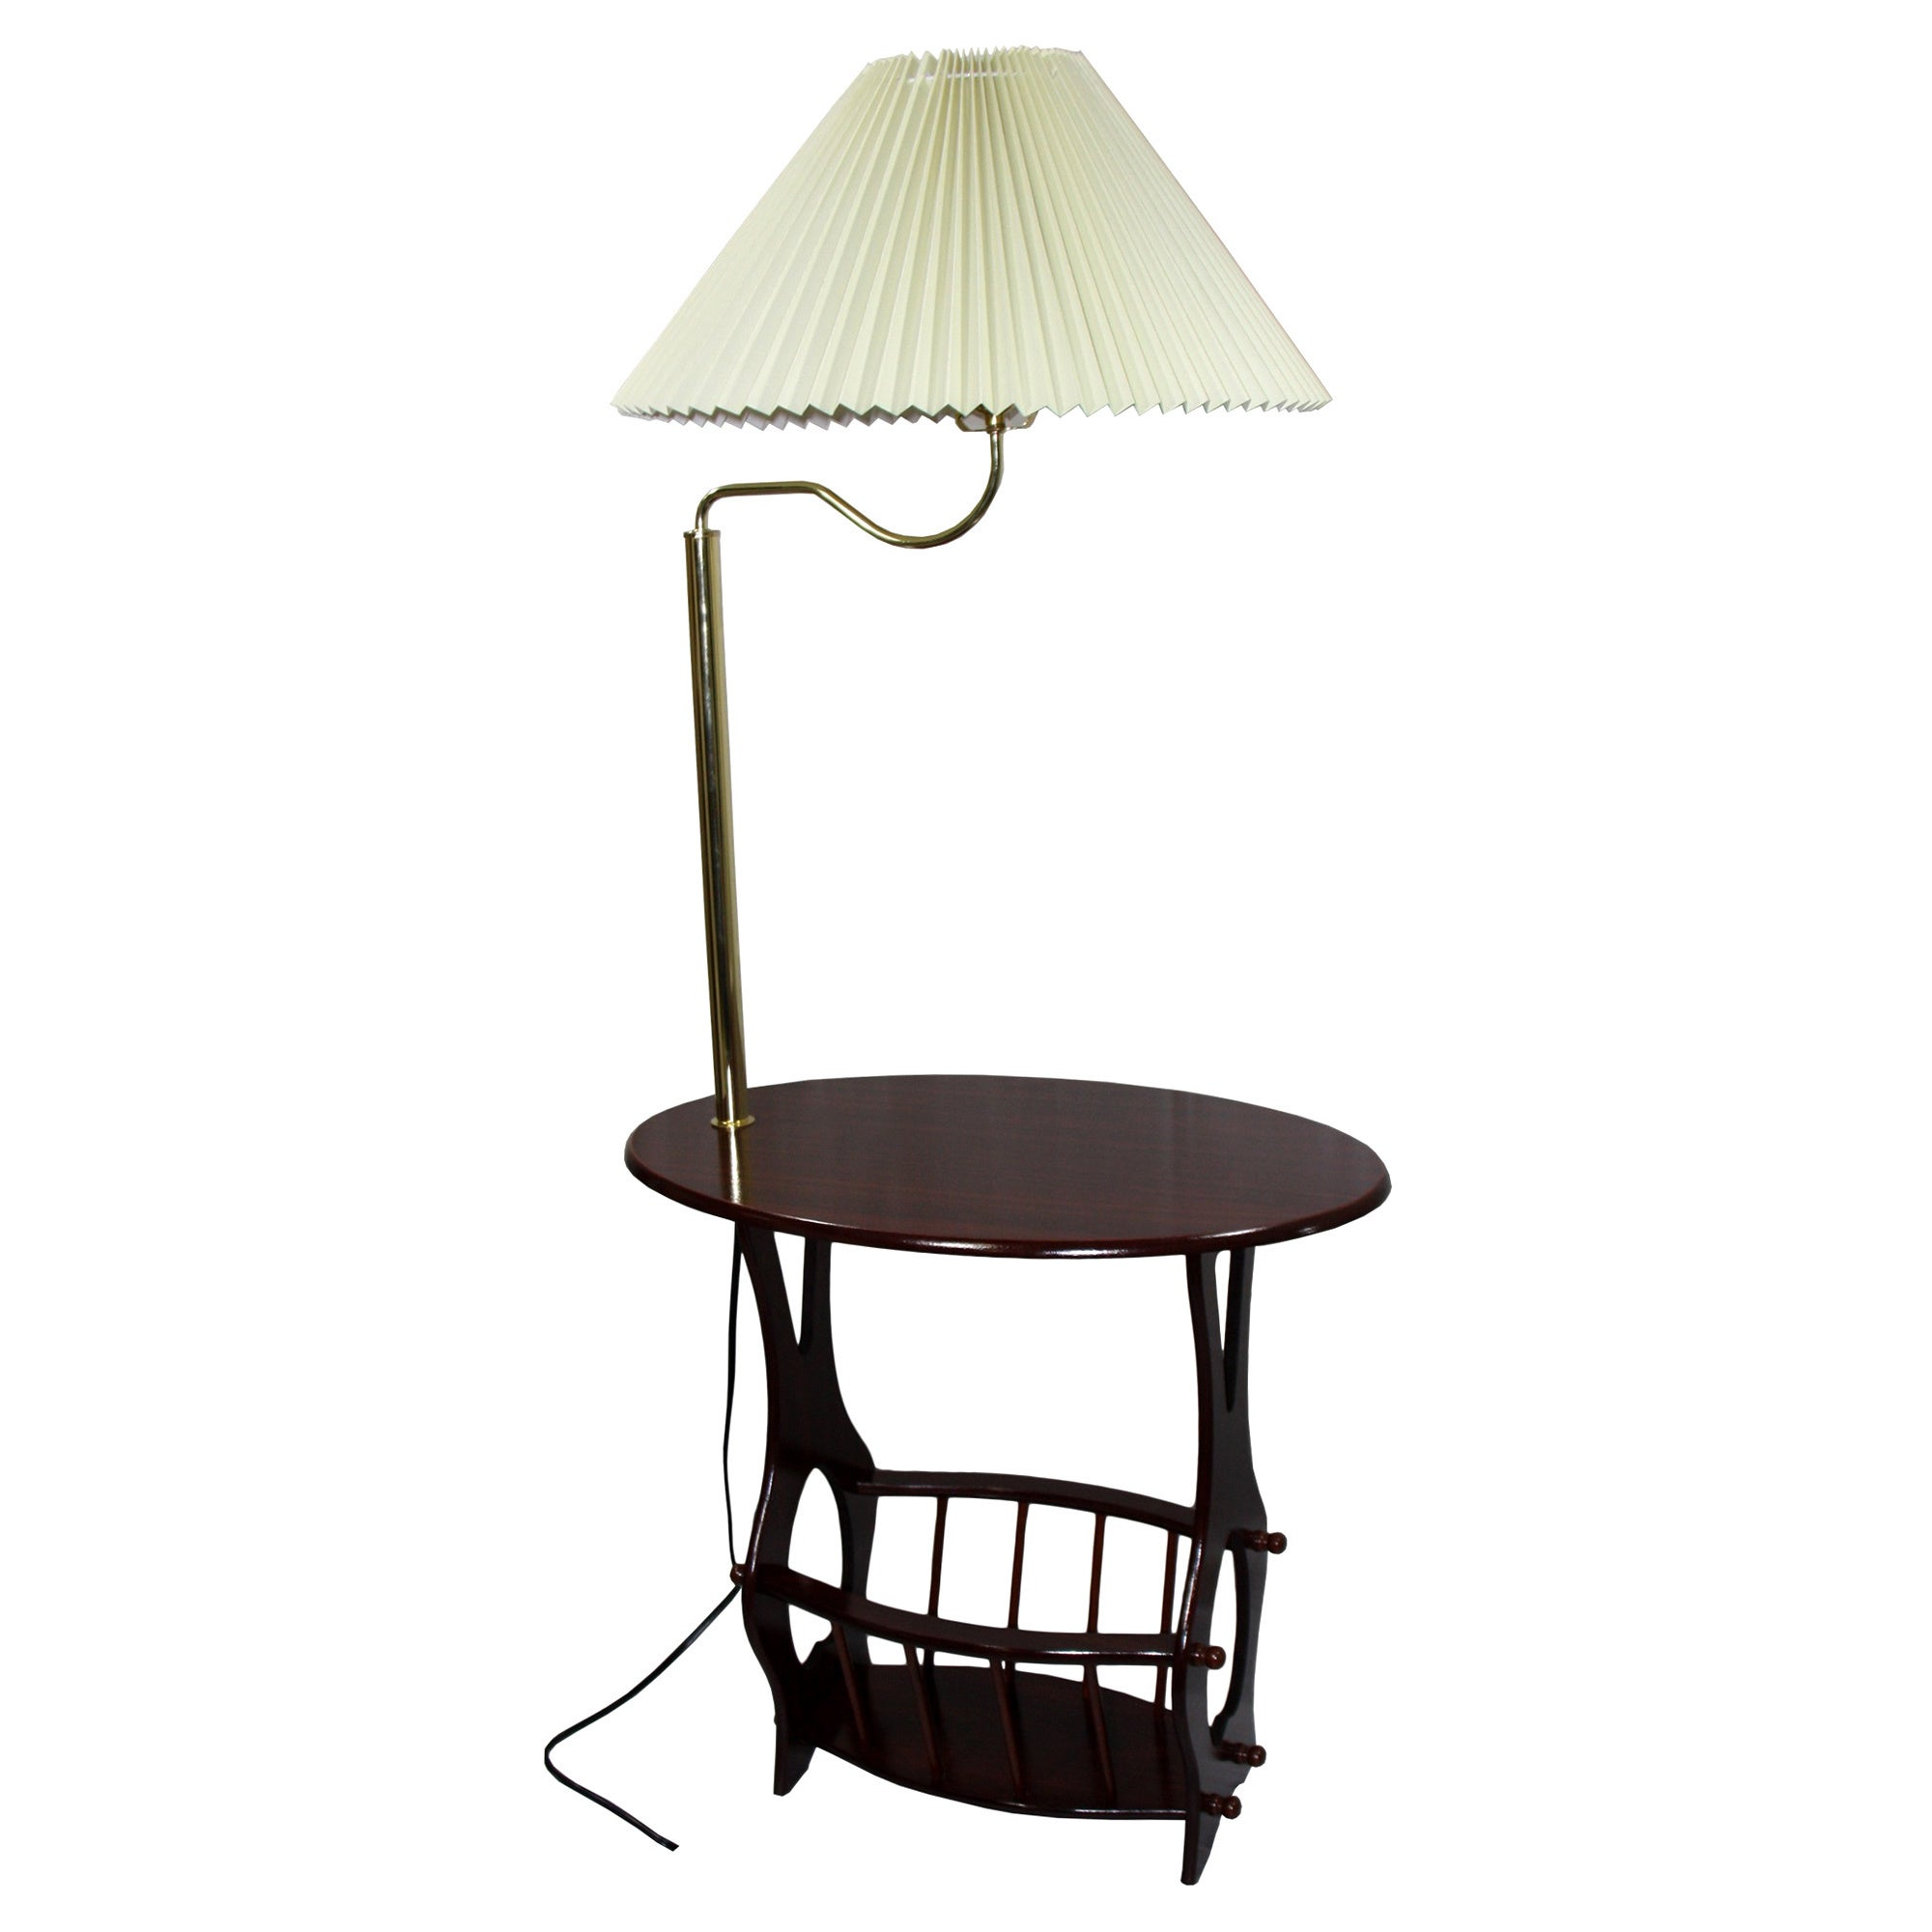 Br Floor Lamp End Table With Magazine Rack